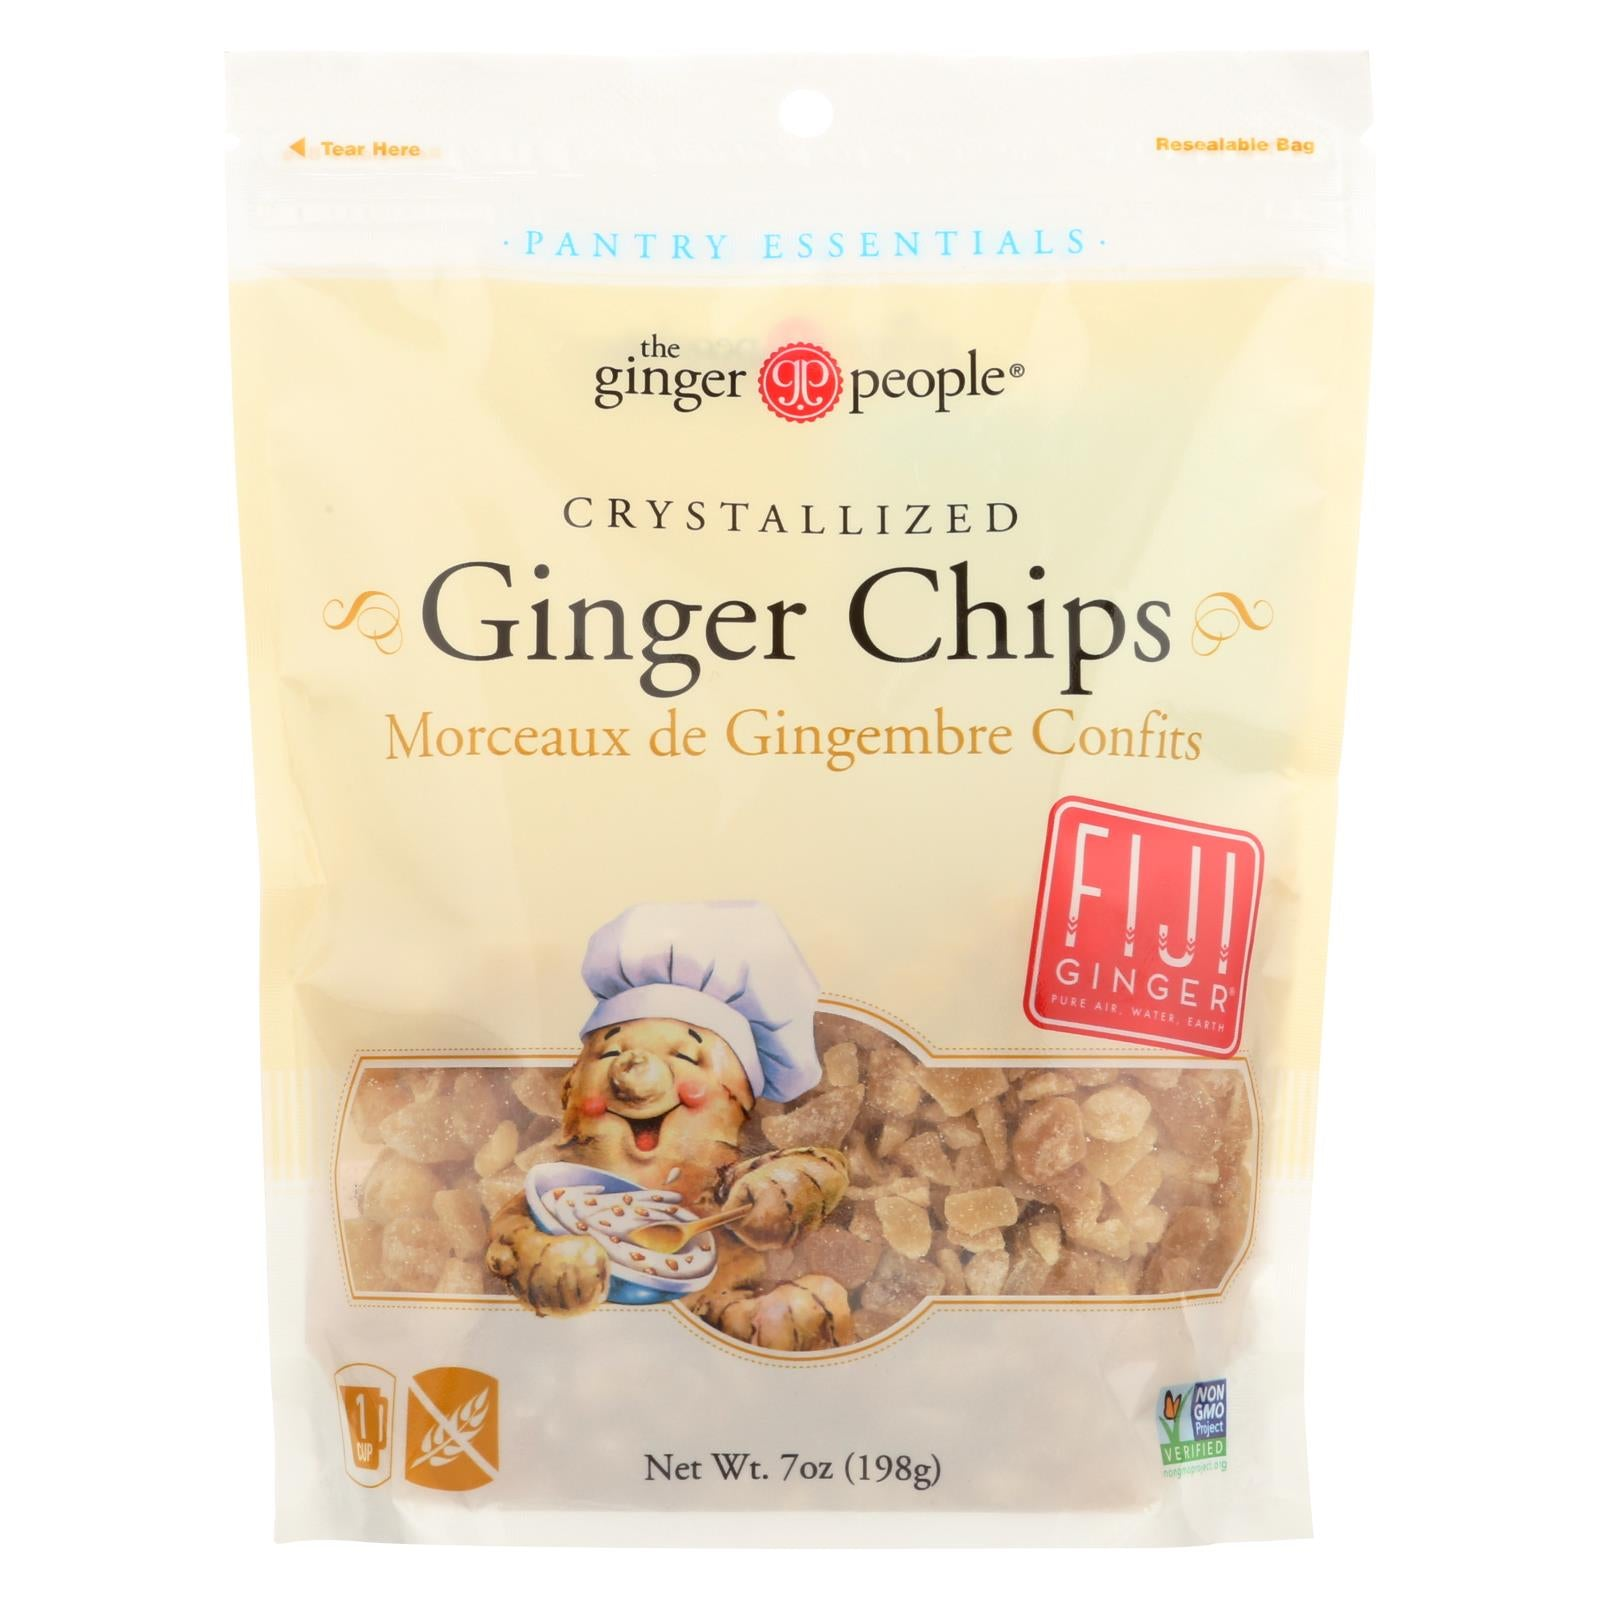 Buy Ginger People Crystallized Ginger Chips - Bakers Cut - 7 oz - Case of 12 - Baking and Cake Decorating from Veroeco.com